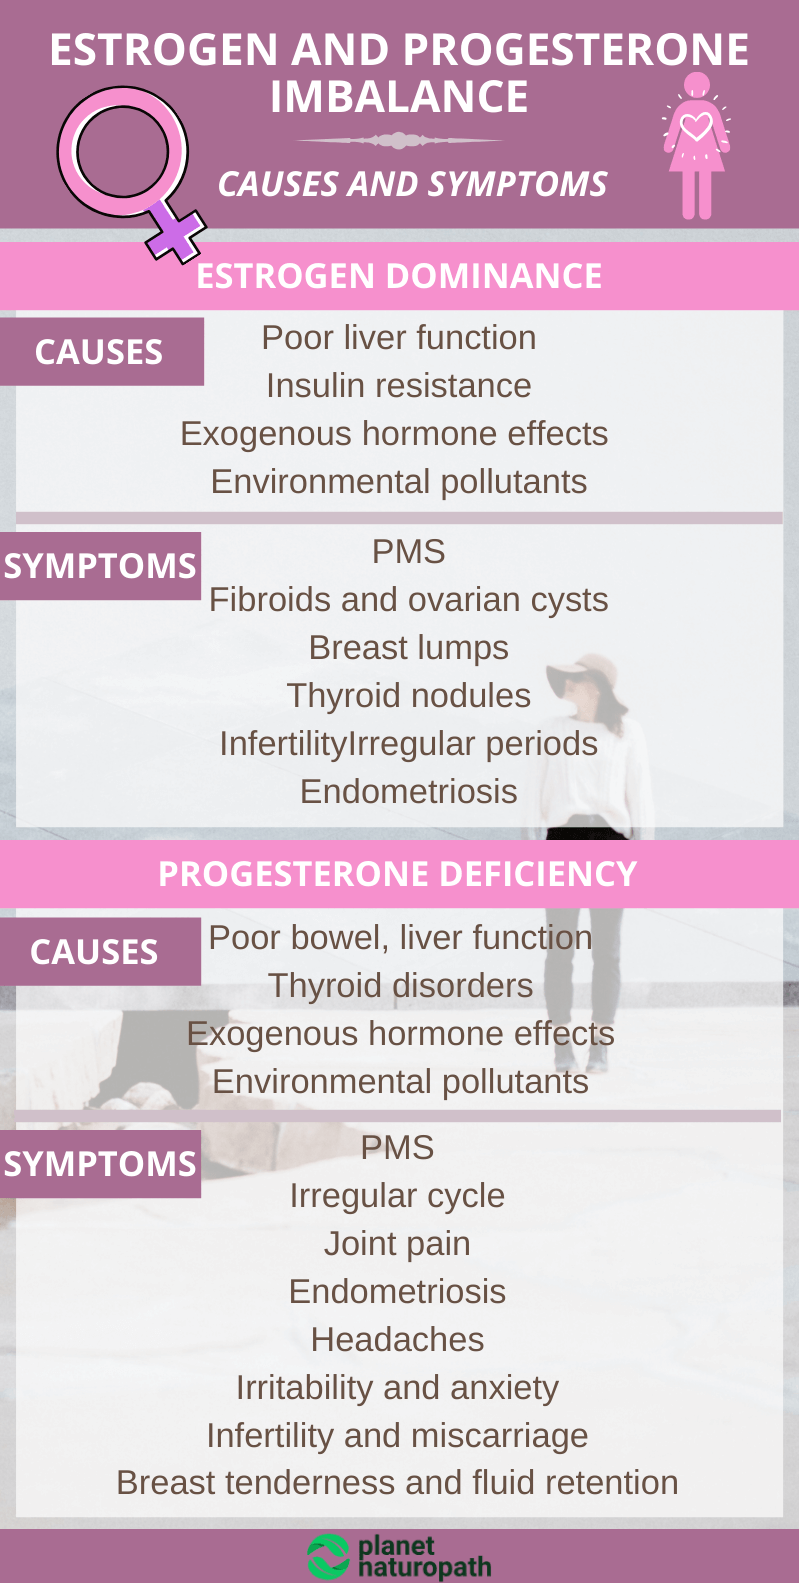 Estrogen-and-progesterone-imbalance